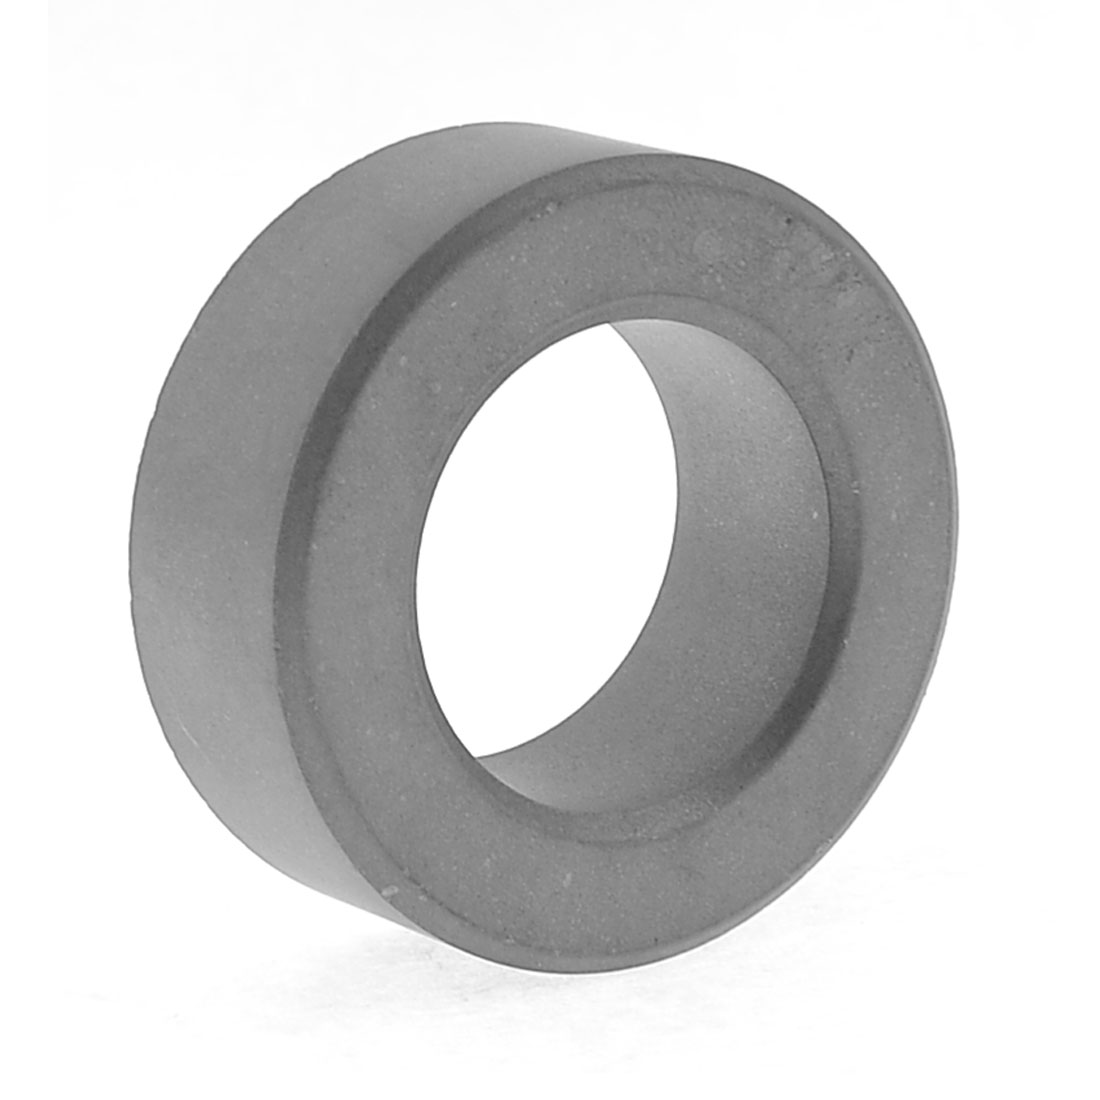 50 x 30 x 19mm Ferrite Ring Iron Toroid Core Black for Power Inductor